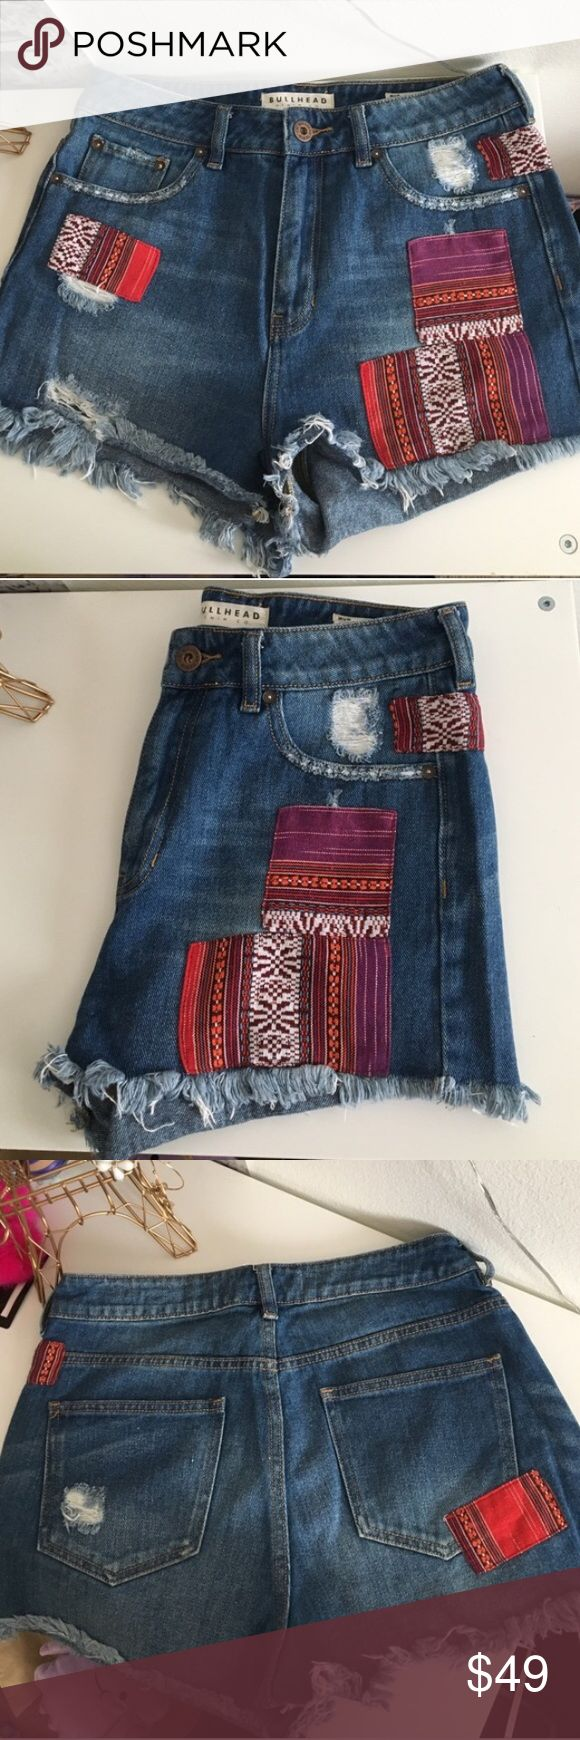 bullhead high waisted patched distressed shorts High waisted shorts with an amazing patched and distressed hem look! Perfect summer and festival wear ! ✈️❤ Only worn 1x. Size 9. ⭐️Bundles 15% off⭐️ please feel free to ask any questions or submit an offer. Bullhead Shorts